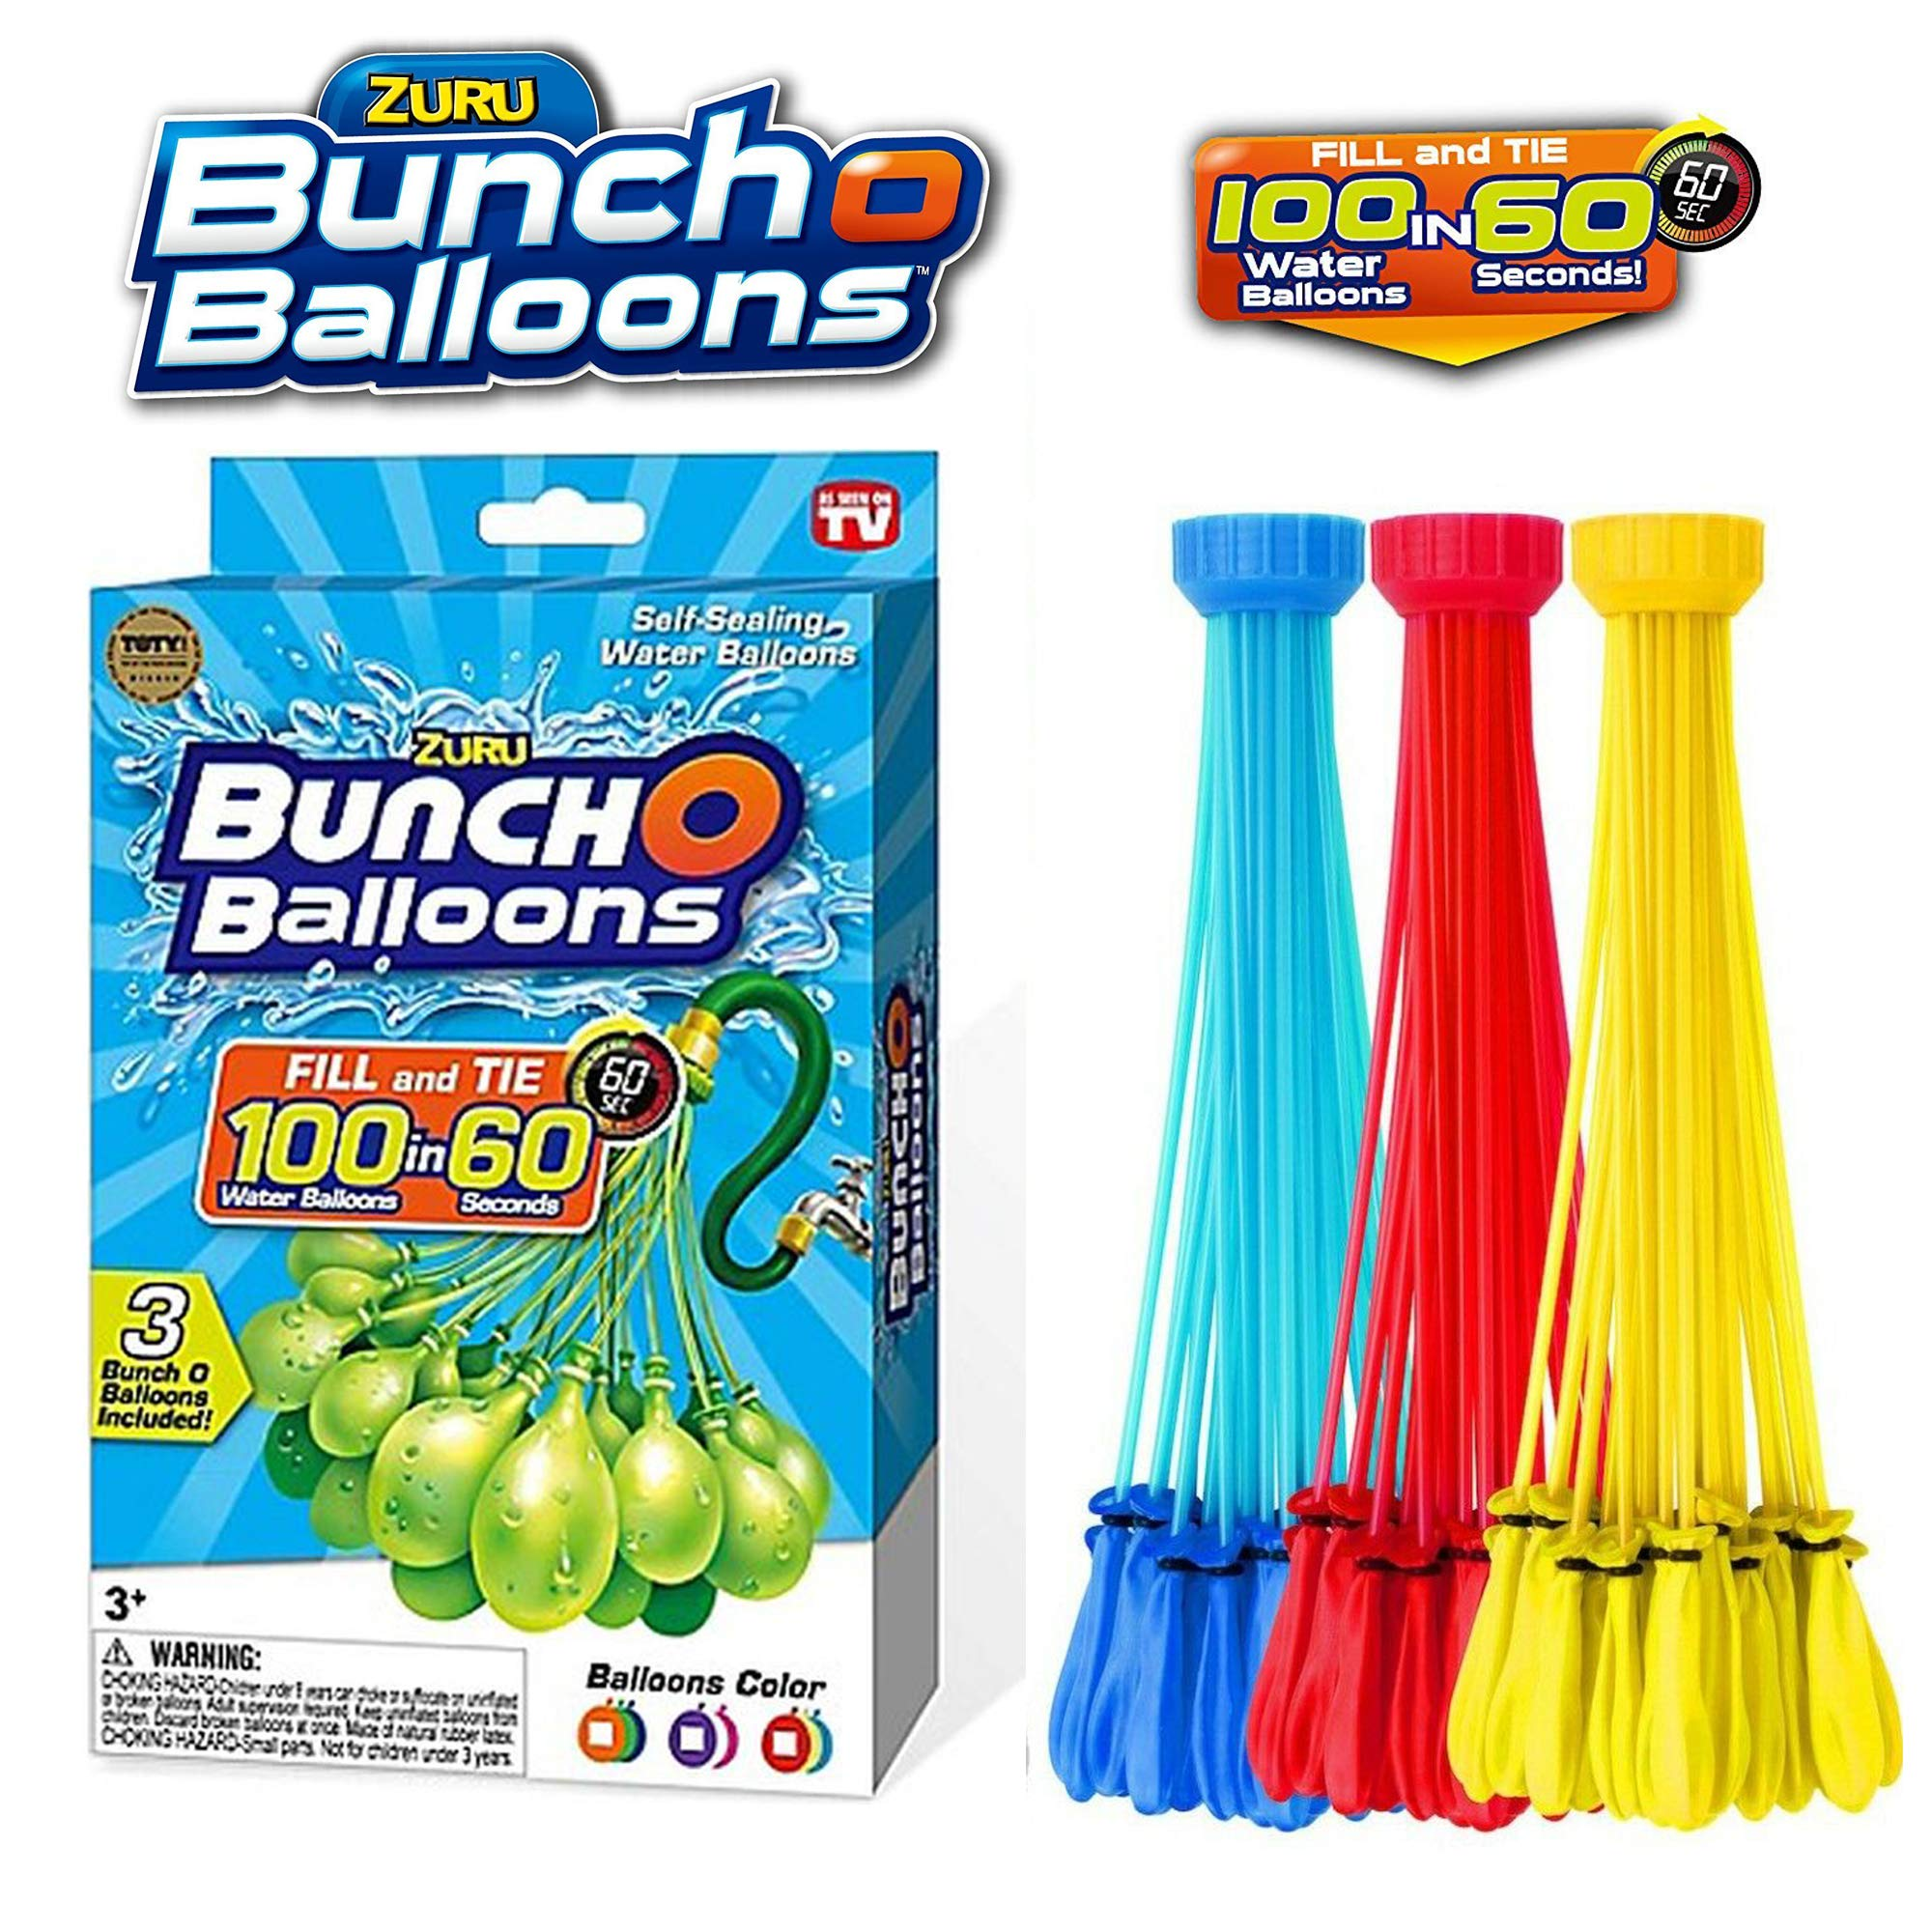 Self-Sealing Water Balloons Color Vary 2 Pack - 200 Total Water Balloons